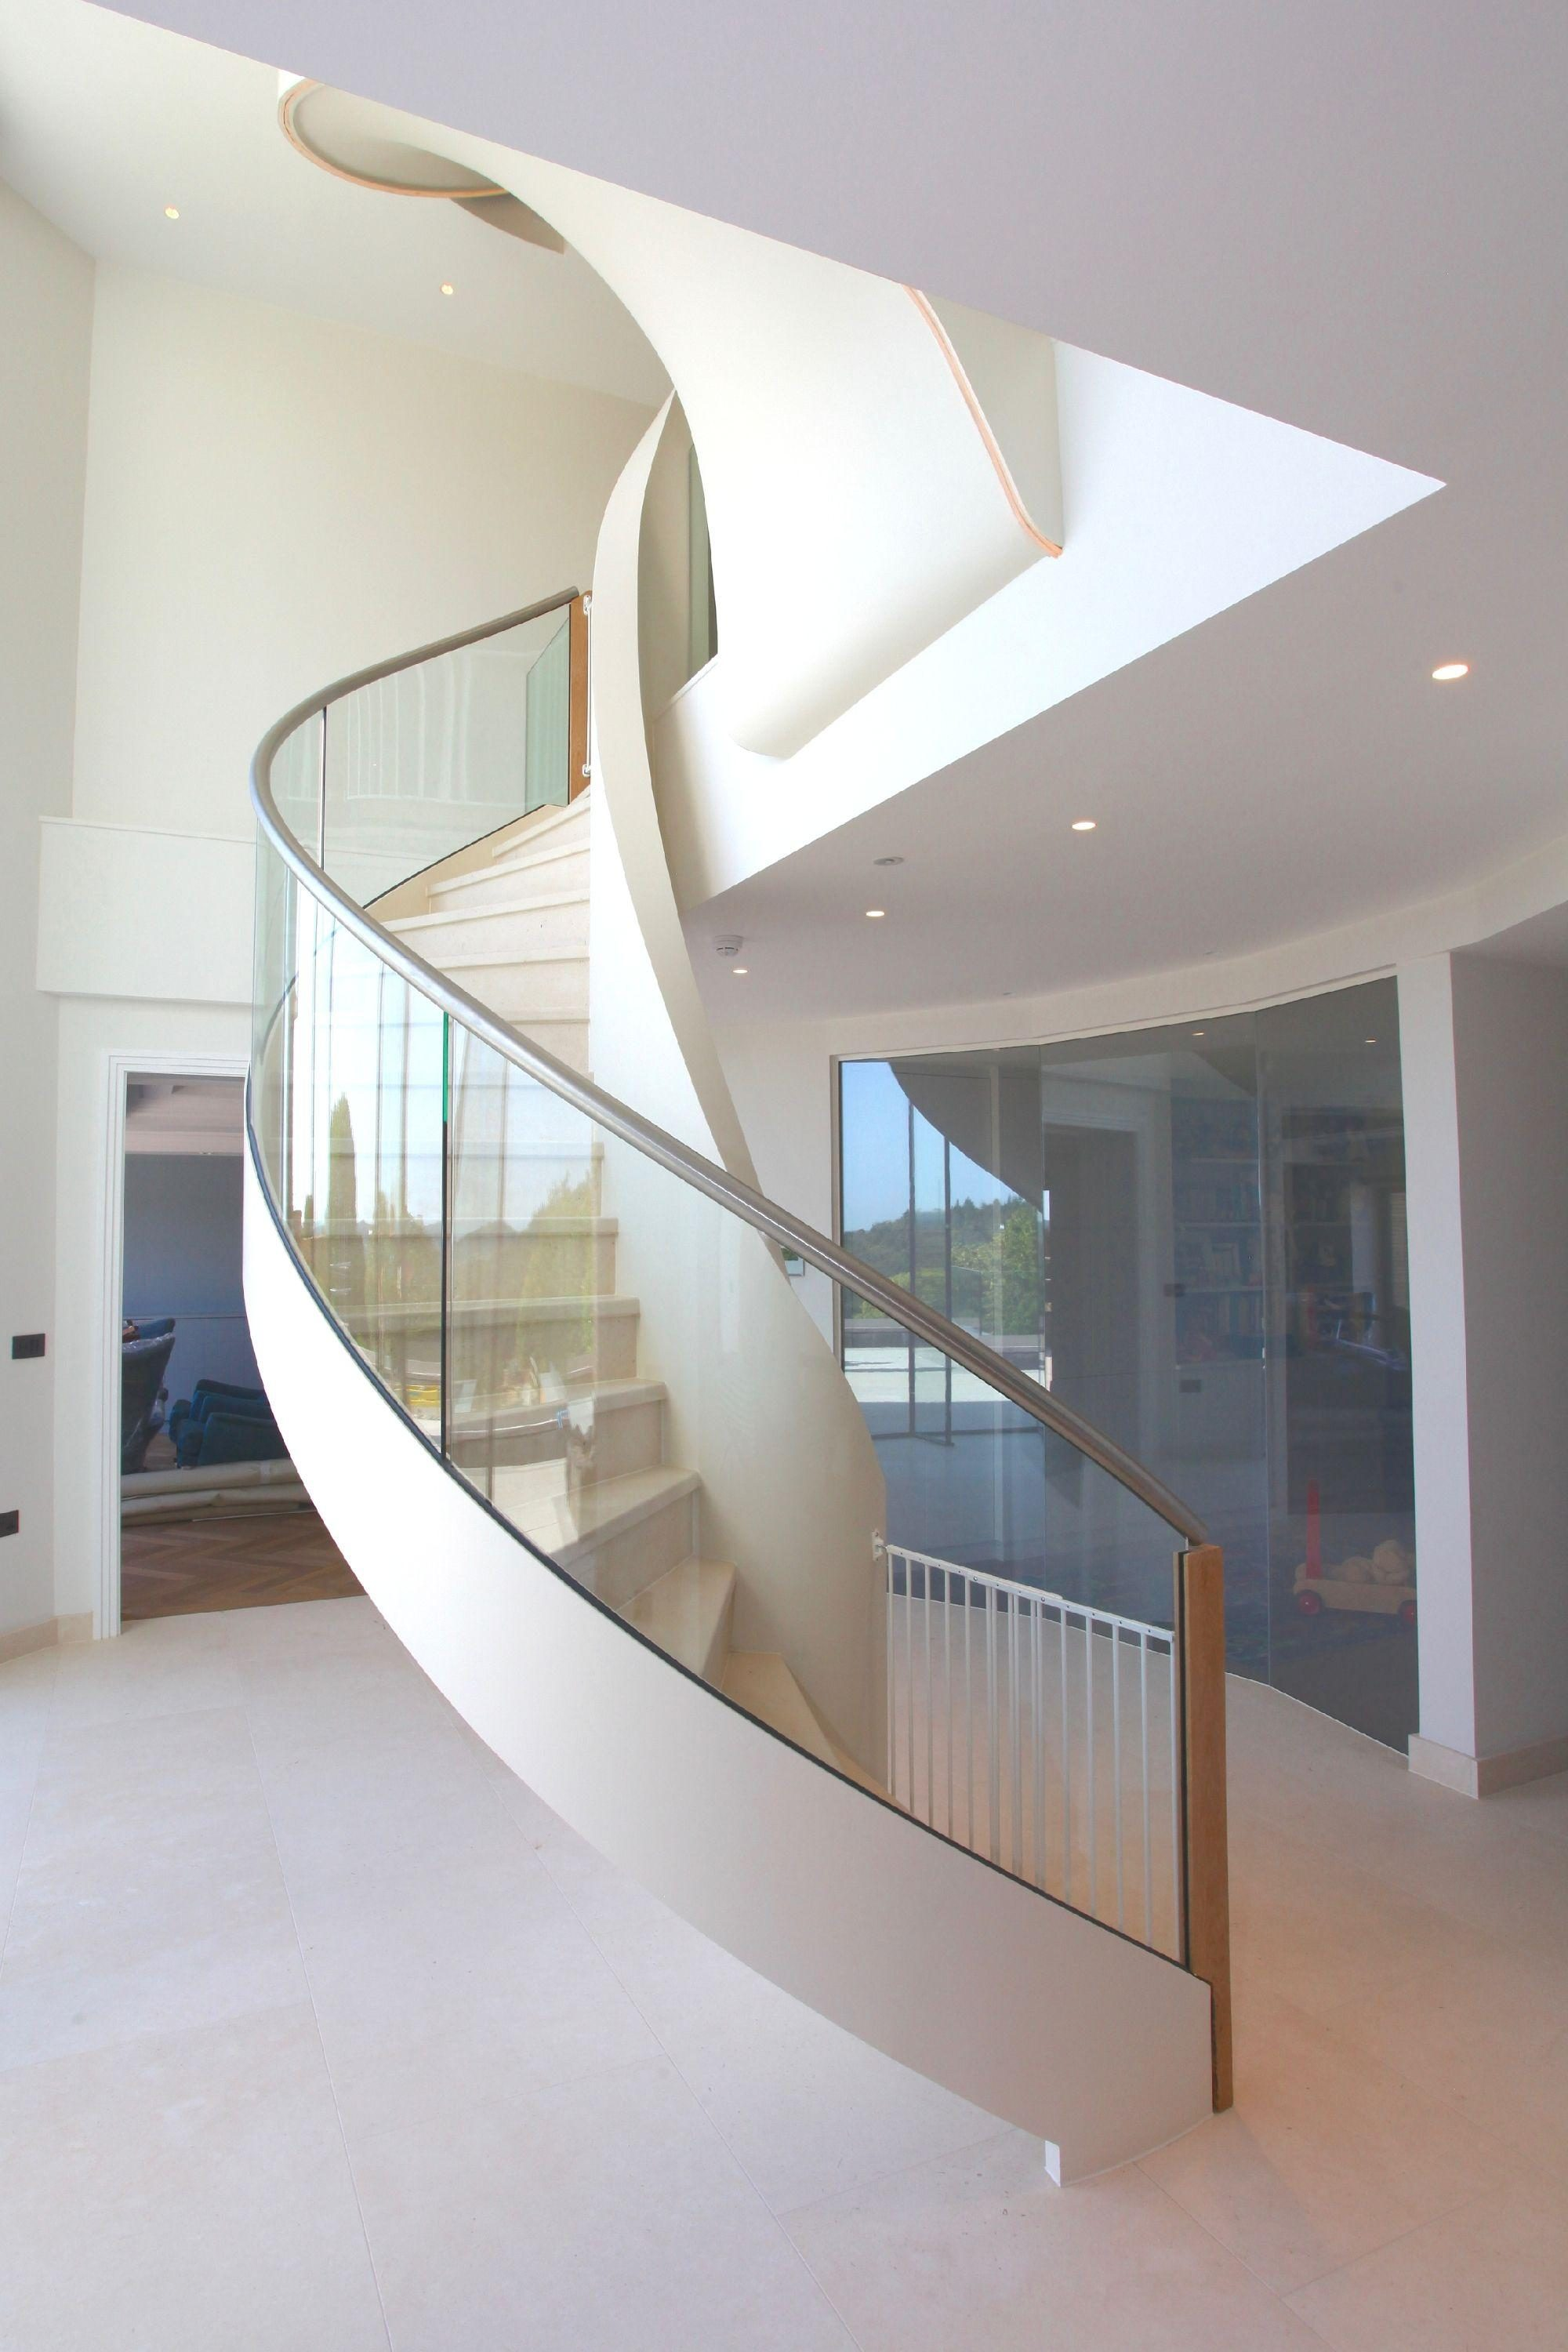 Elliptical stair with glass balustrade